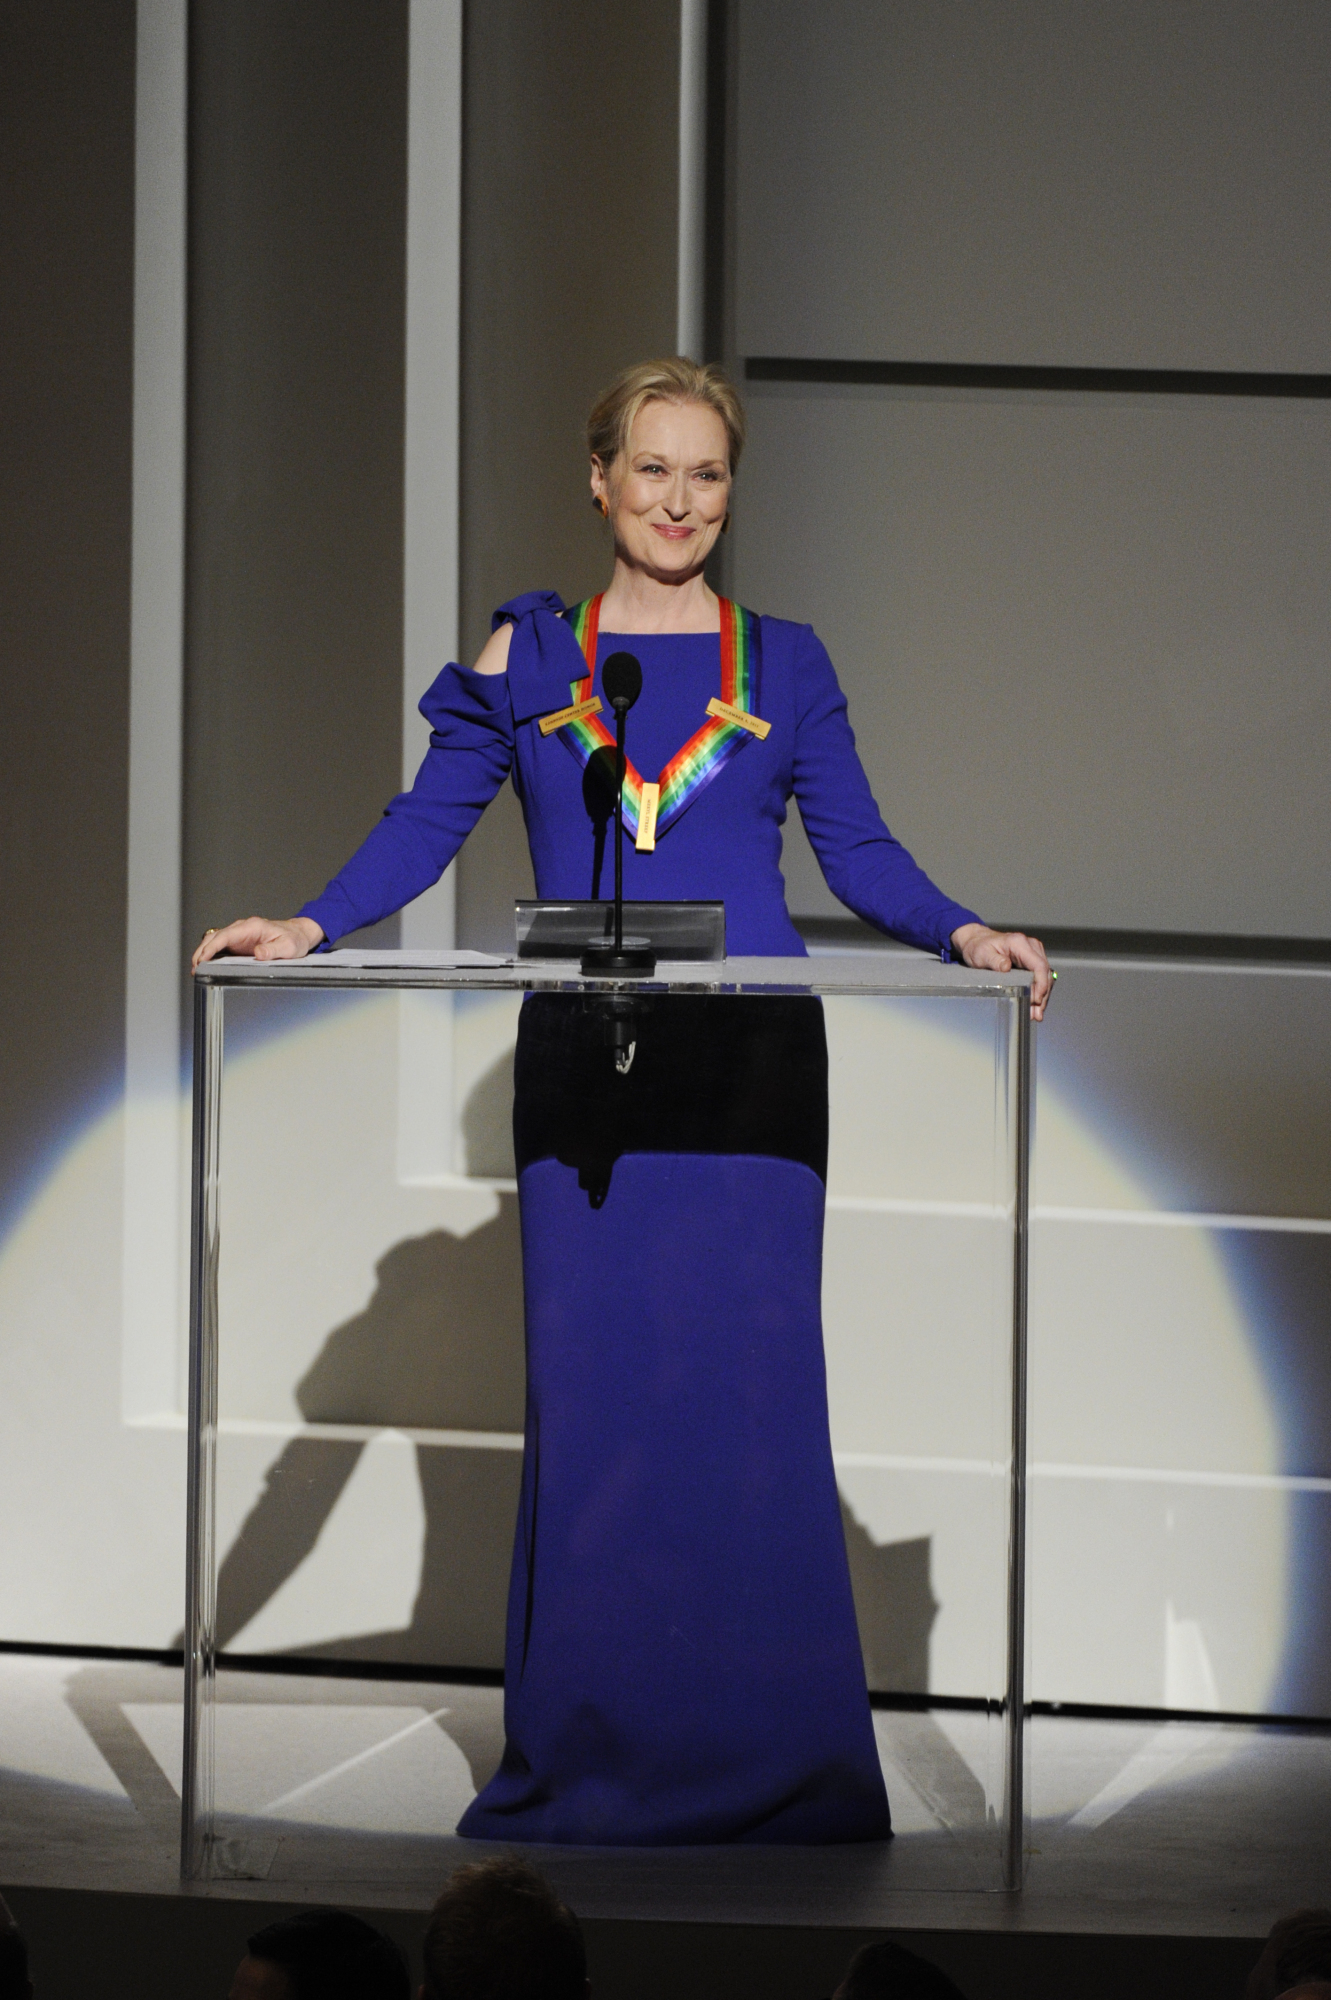 Meryl Streep Looks Stunning on Stage